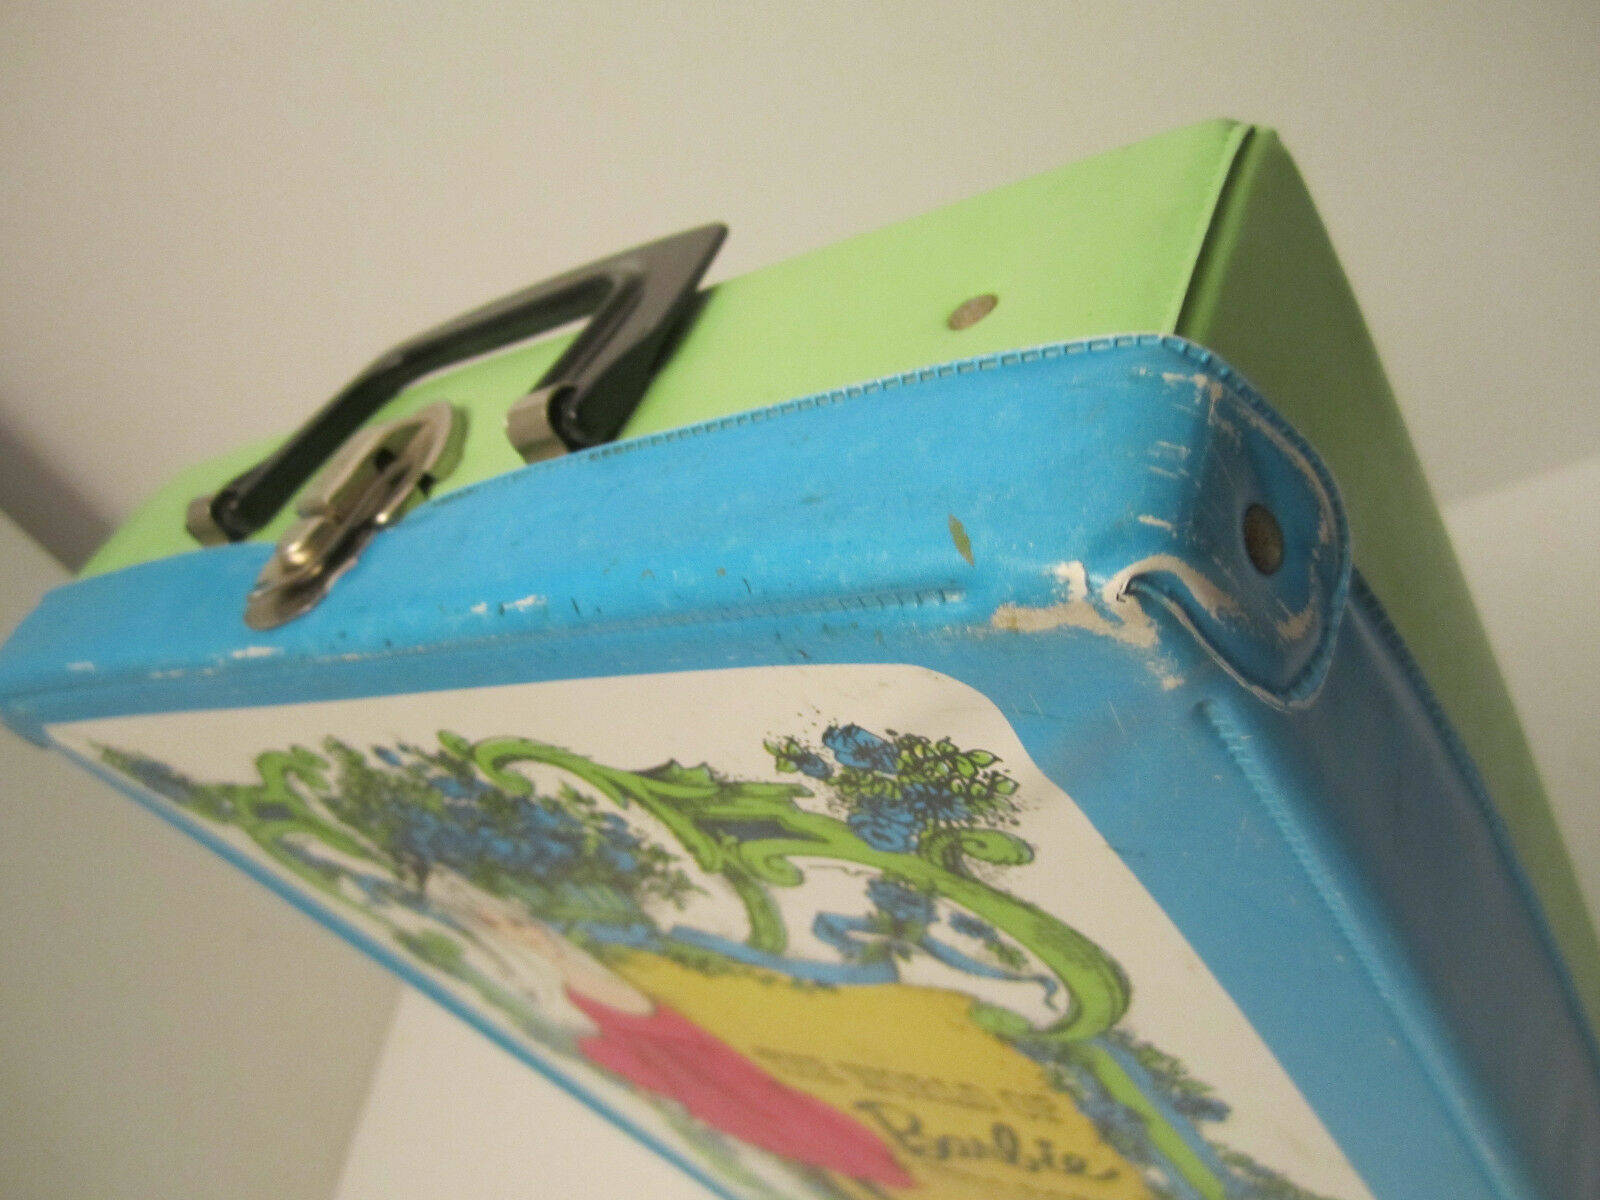 The World Of Barbie Doll Case 1002 Blue Vintage 1968 Doll Carrying Case image 8